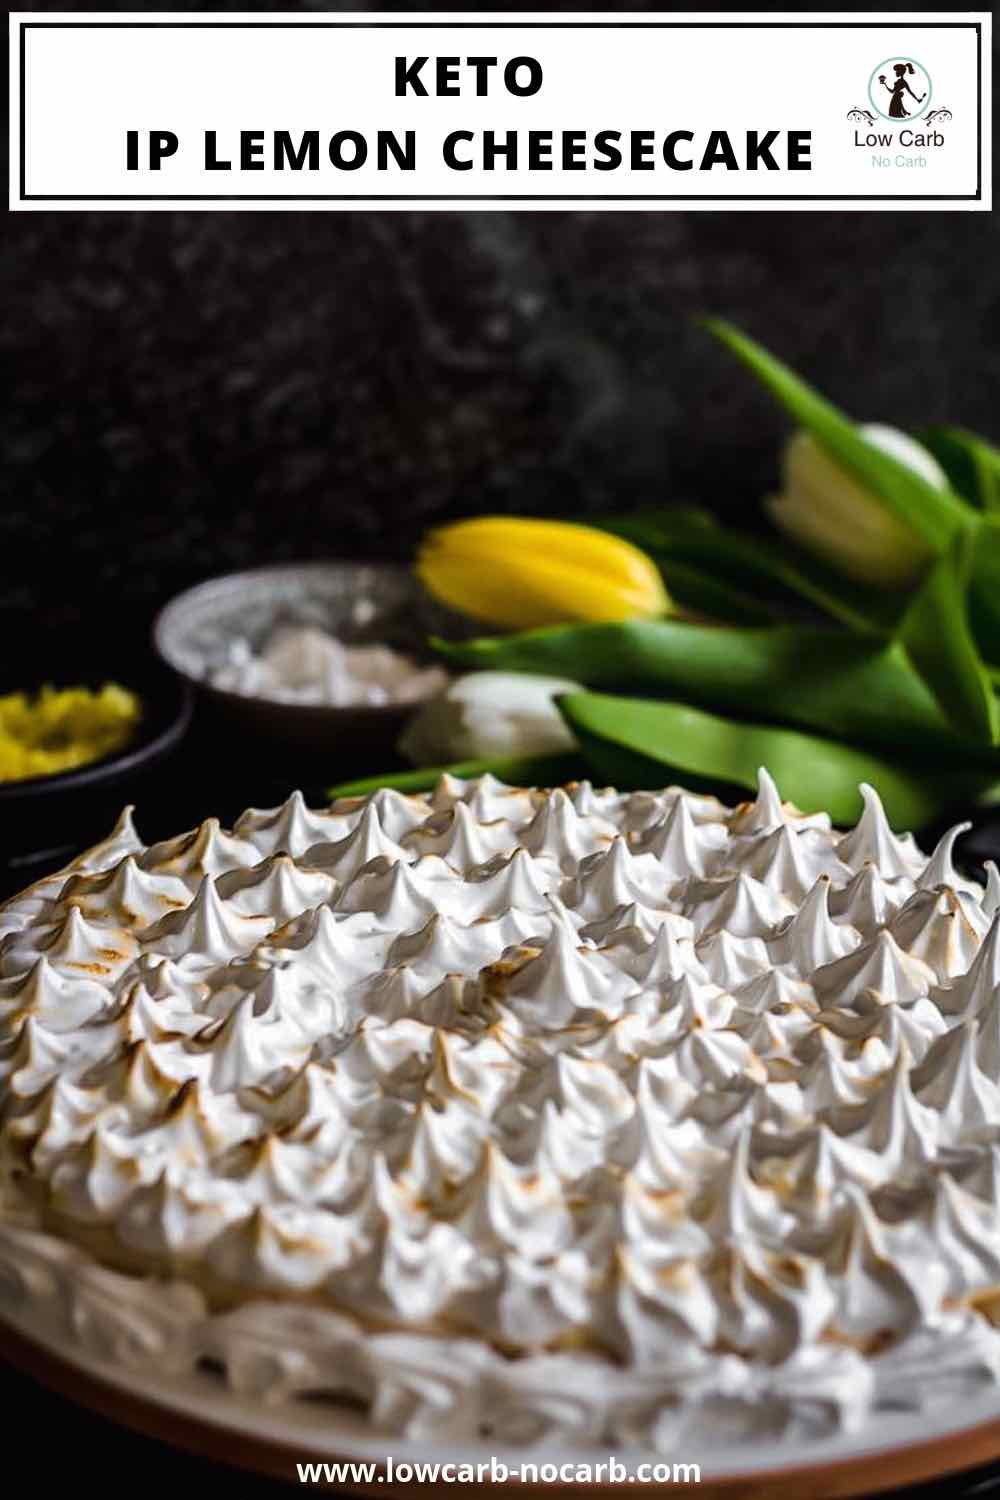 Keto Instant Pot Lemon Cheesecake with Sugar-Free Swiss Meringue Icing